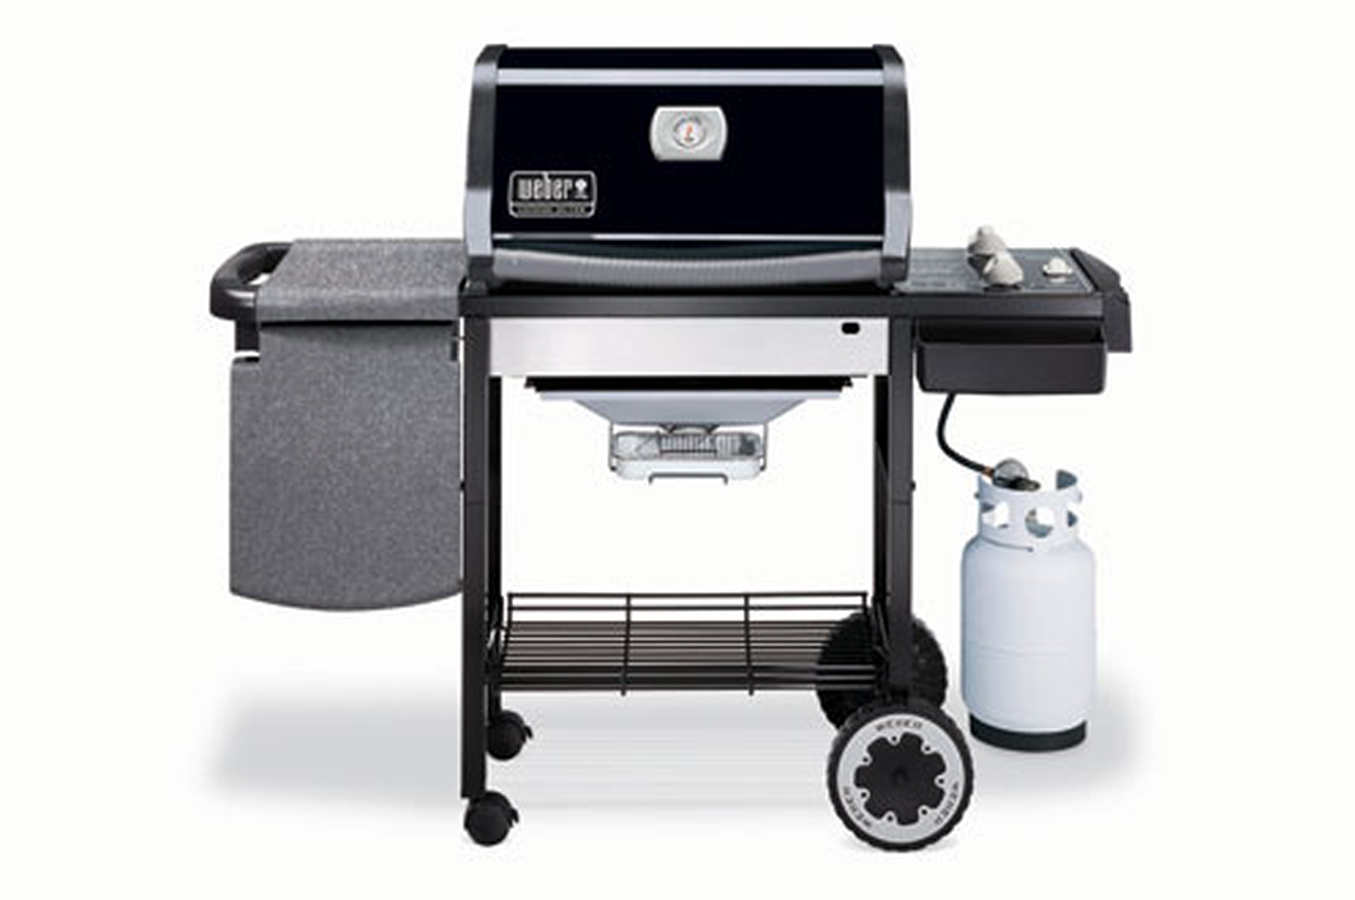 Barbecue americain weber genesis silver a genesis 2295032 darty - Nettoyage grille barbecue weber ...